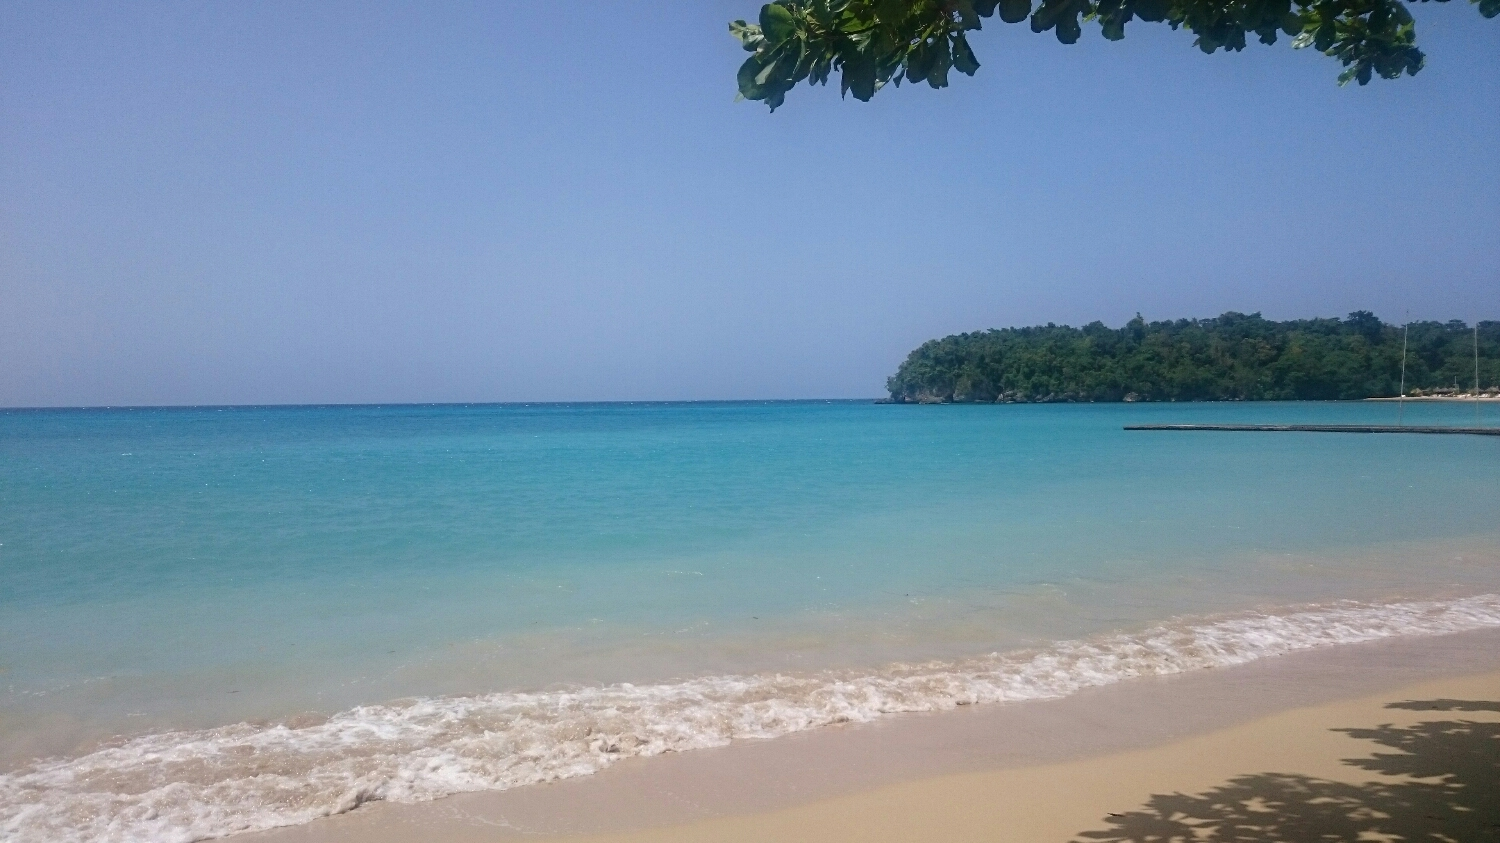 we stopped at this beach for a full Jamaican lunch